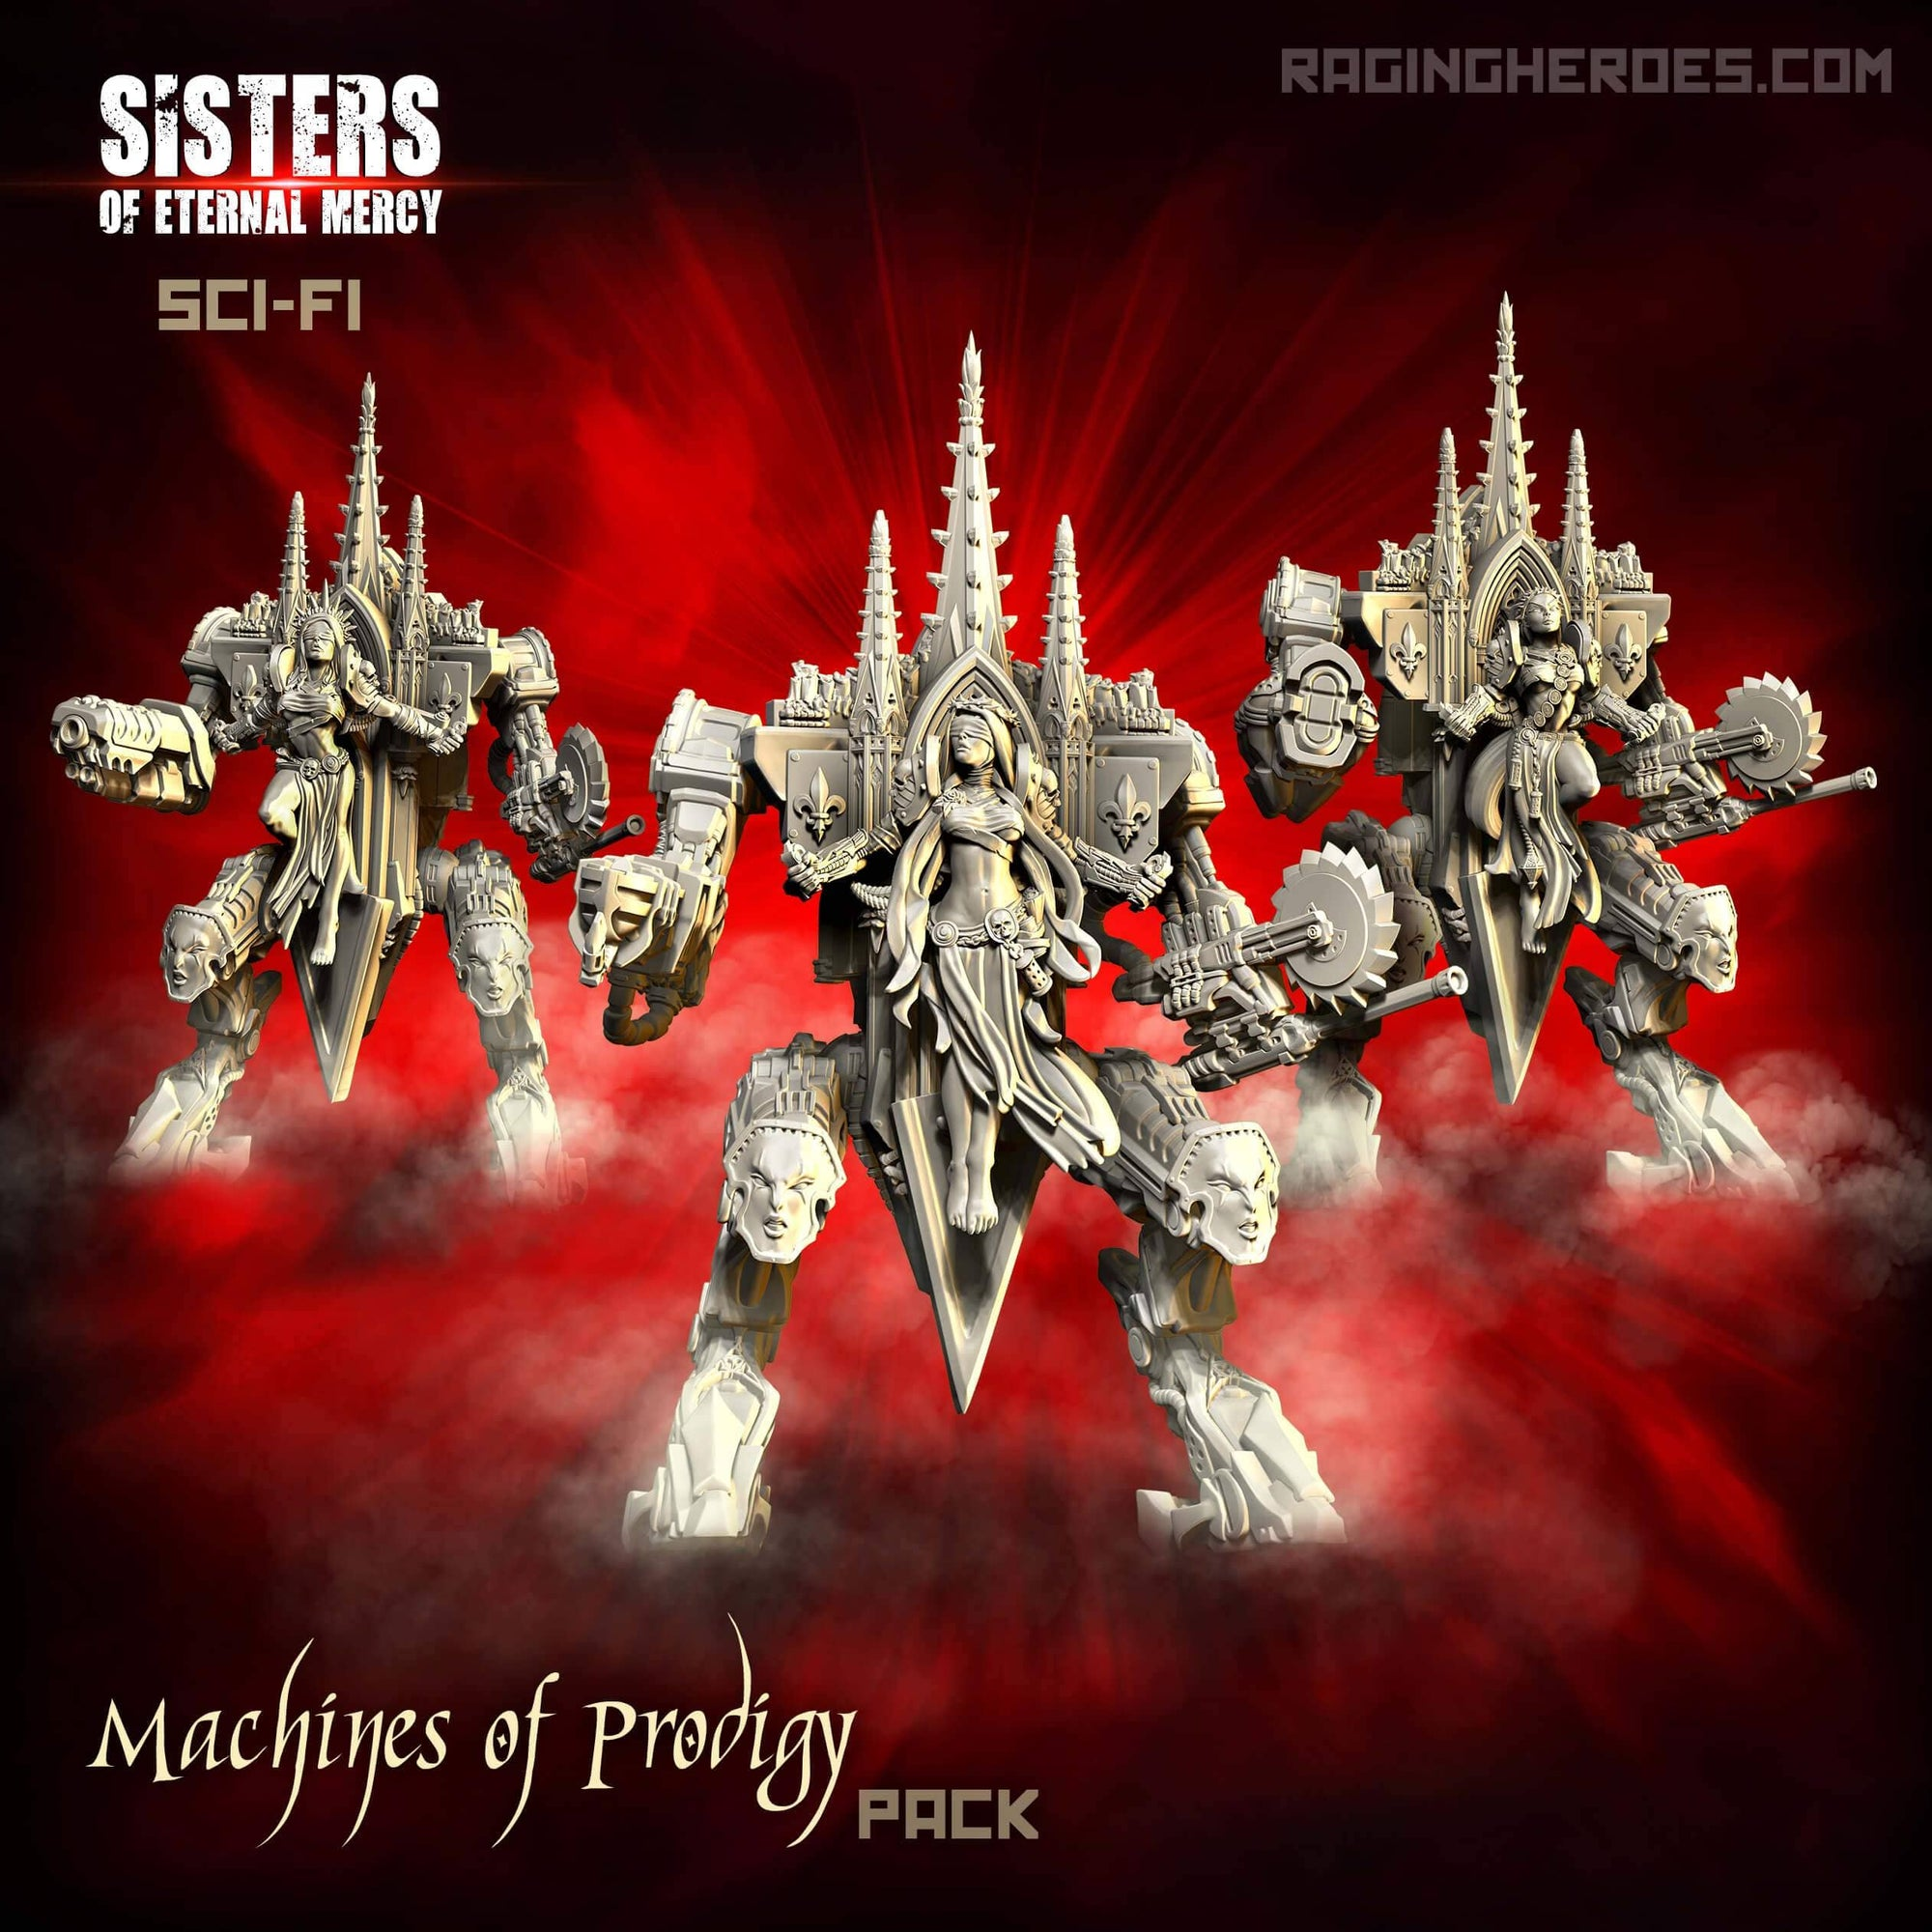 Machines of Prodigy Pack (SoEM - SF) - Raging Heroes